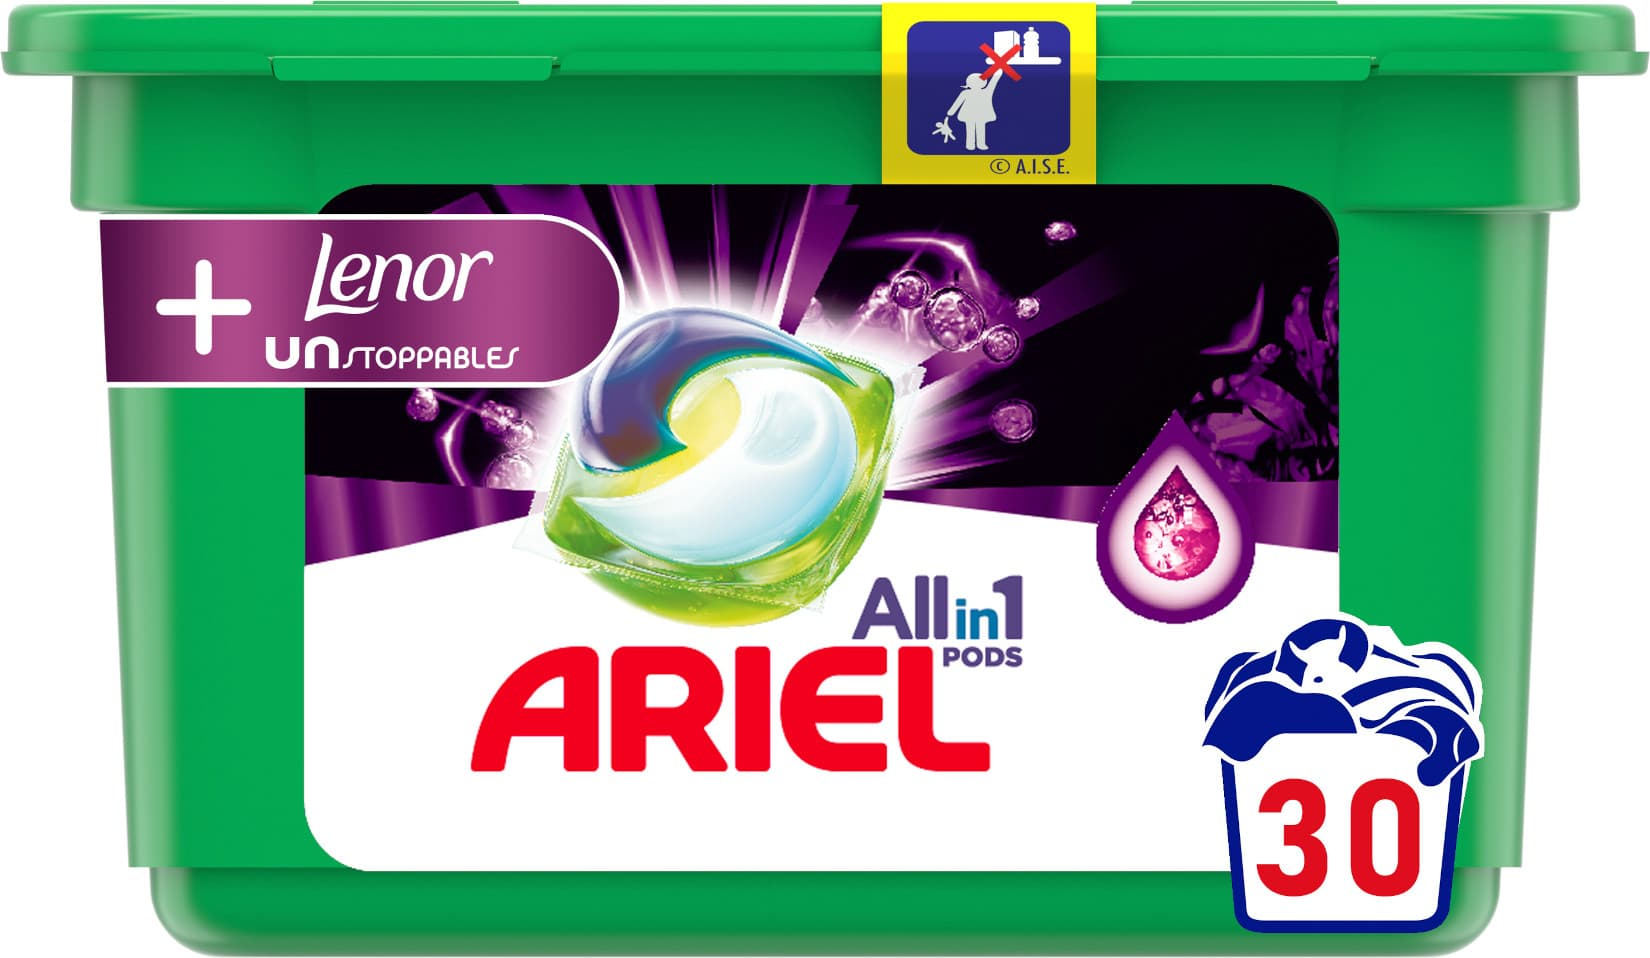 Ariel All-in-1 Touch of Lenor Unstoppables, Gelové tablety 30ks